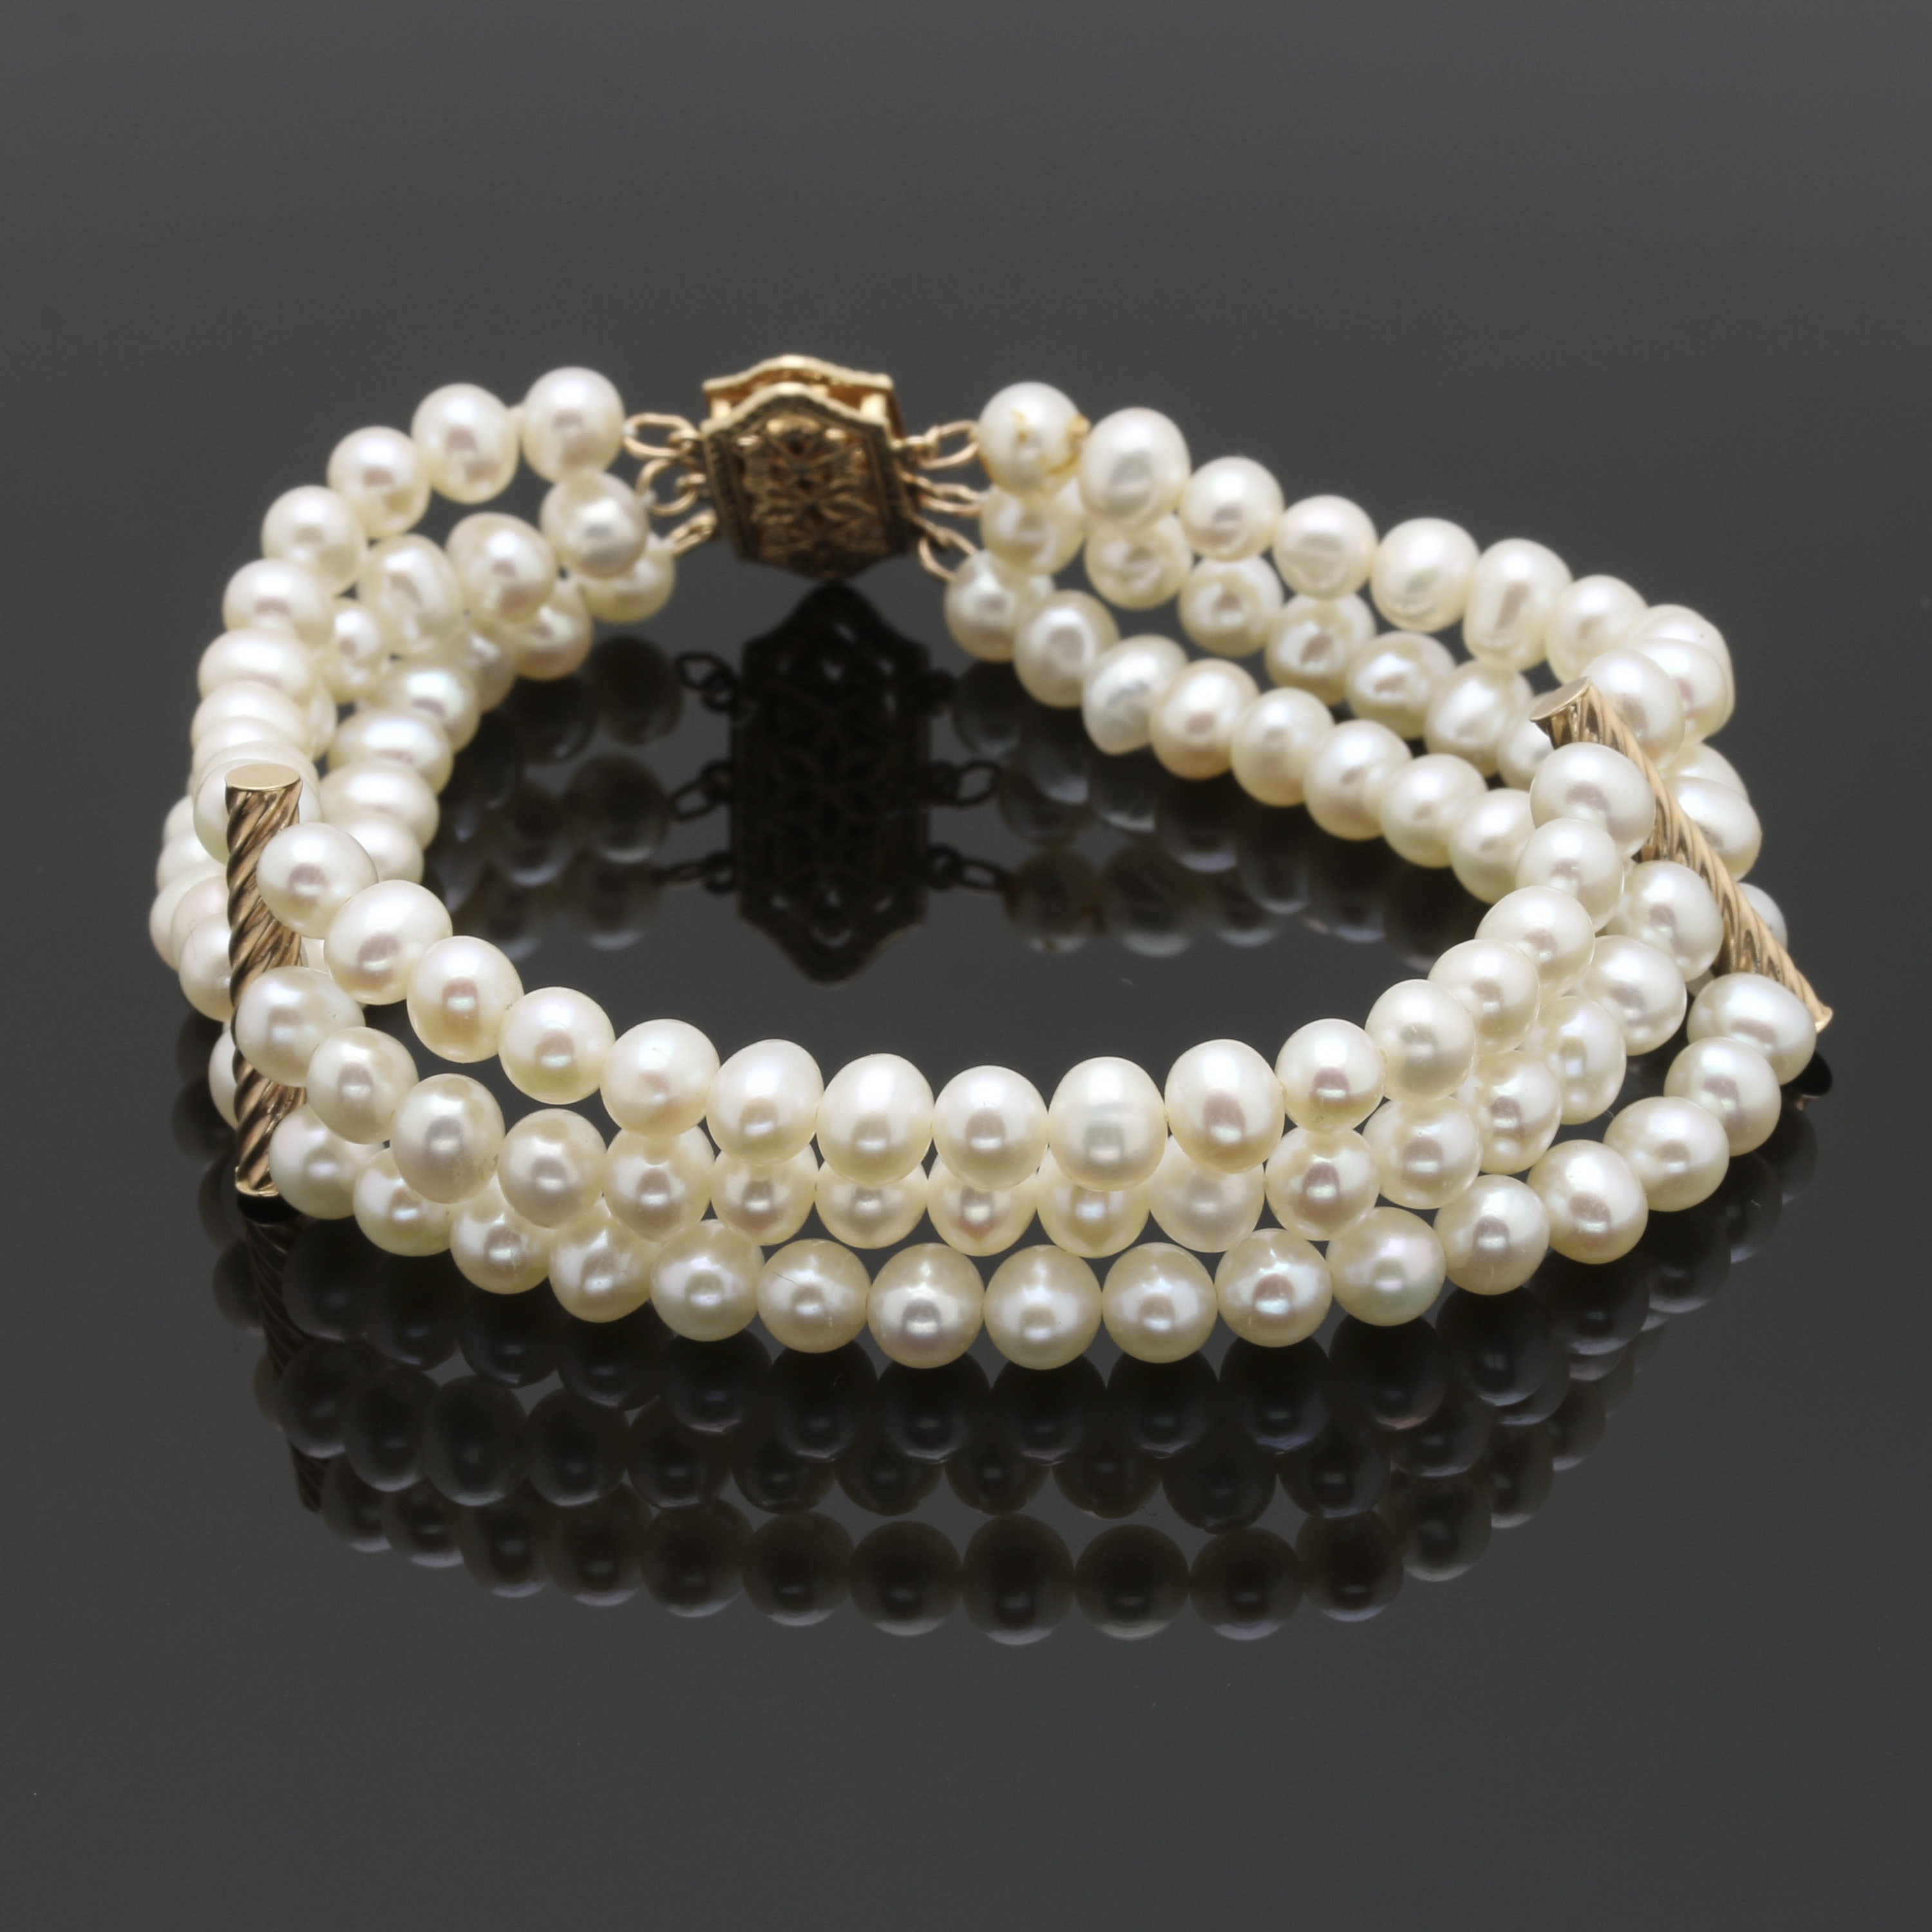 Cultured Freshwater Pearl Bracelet With 14K Yellow Gold Accents